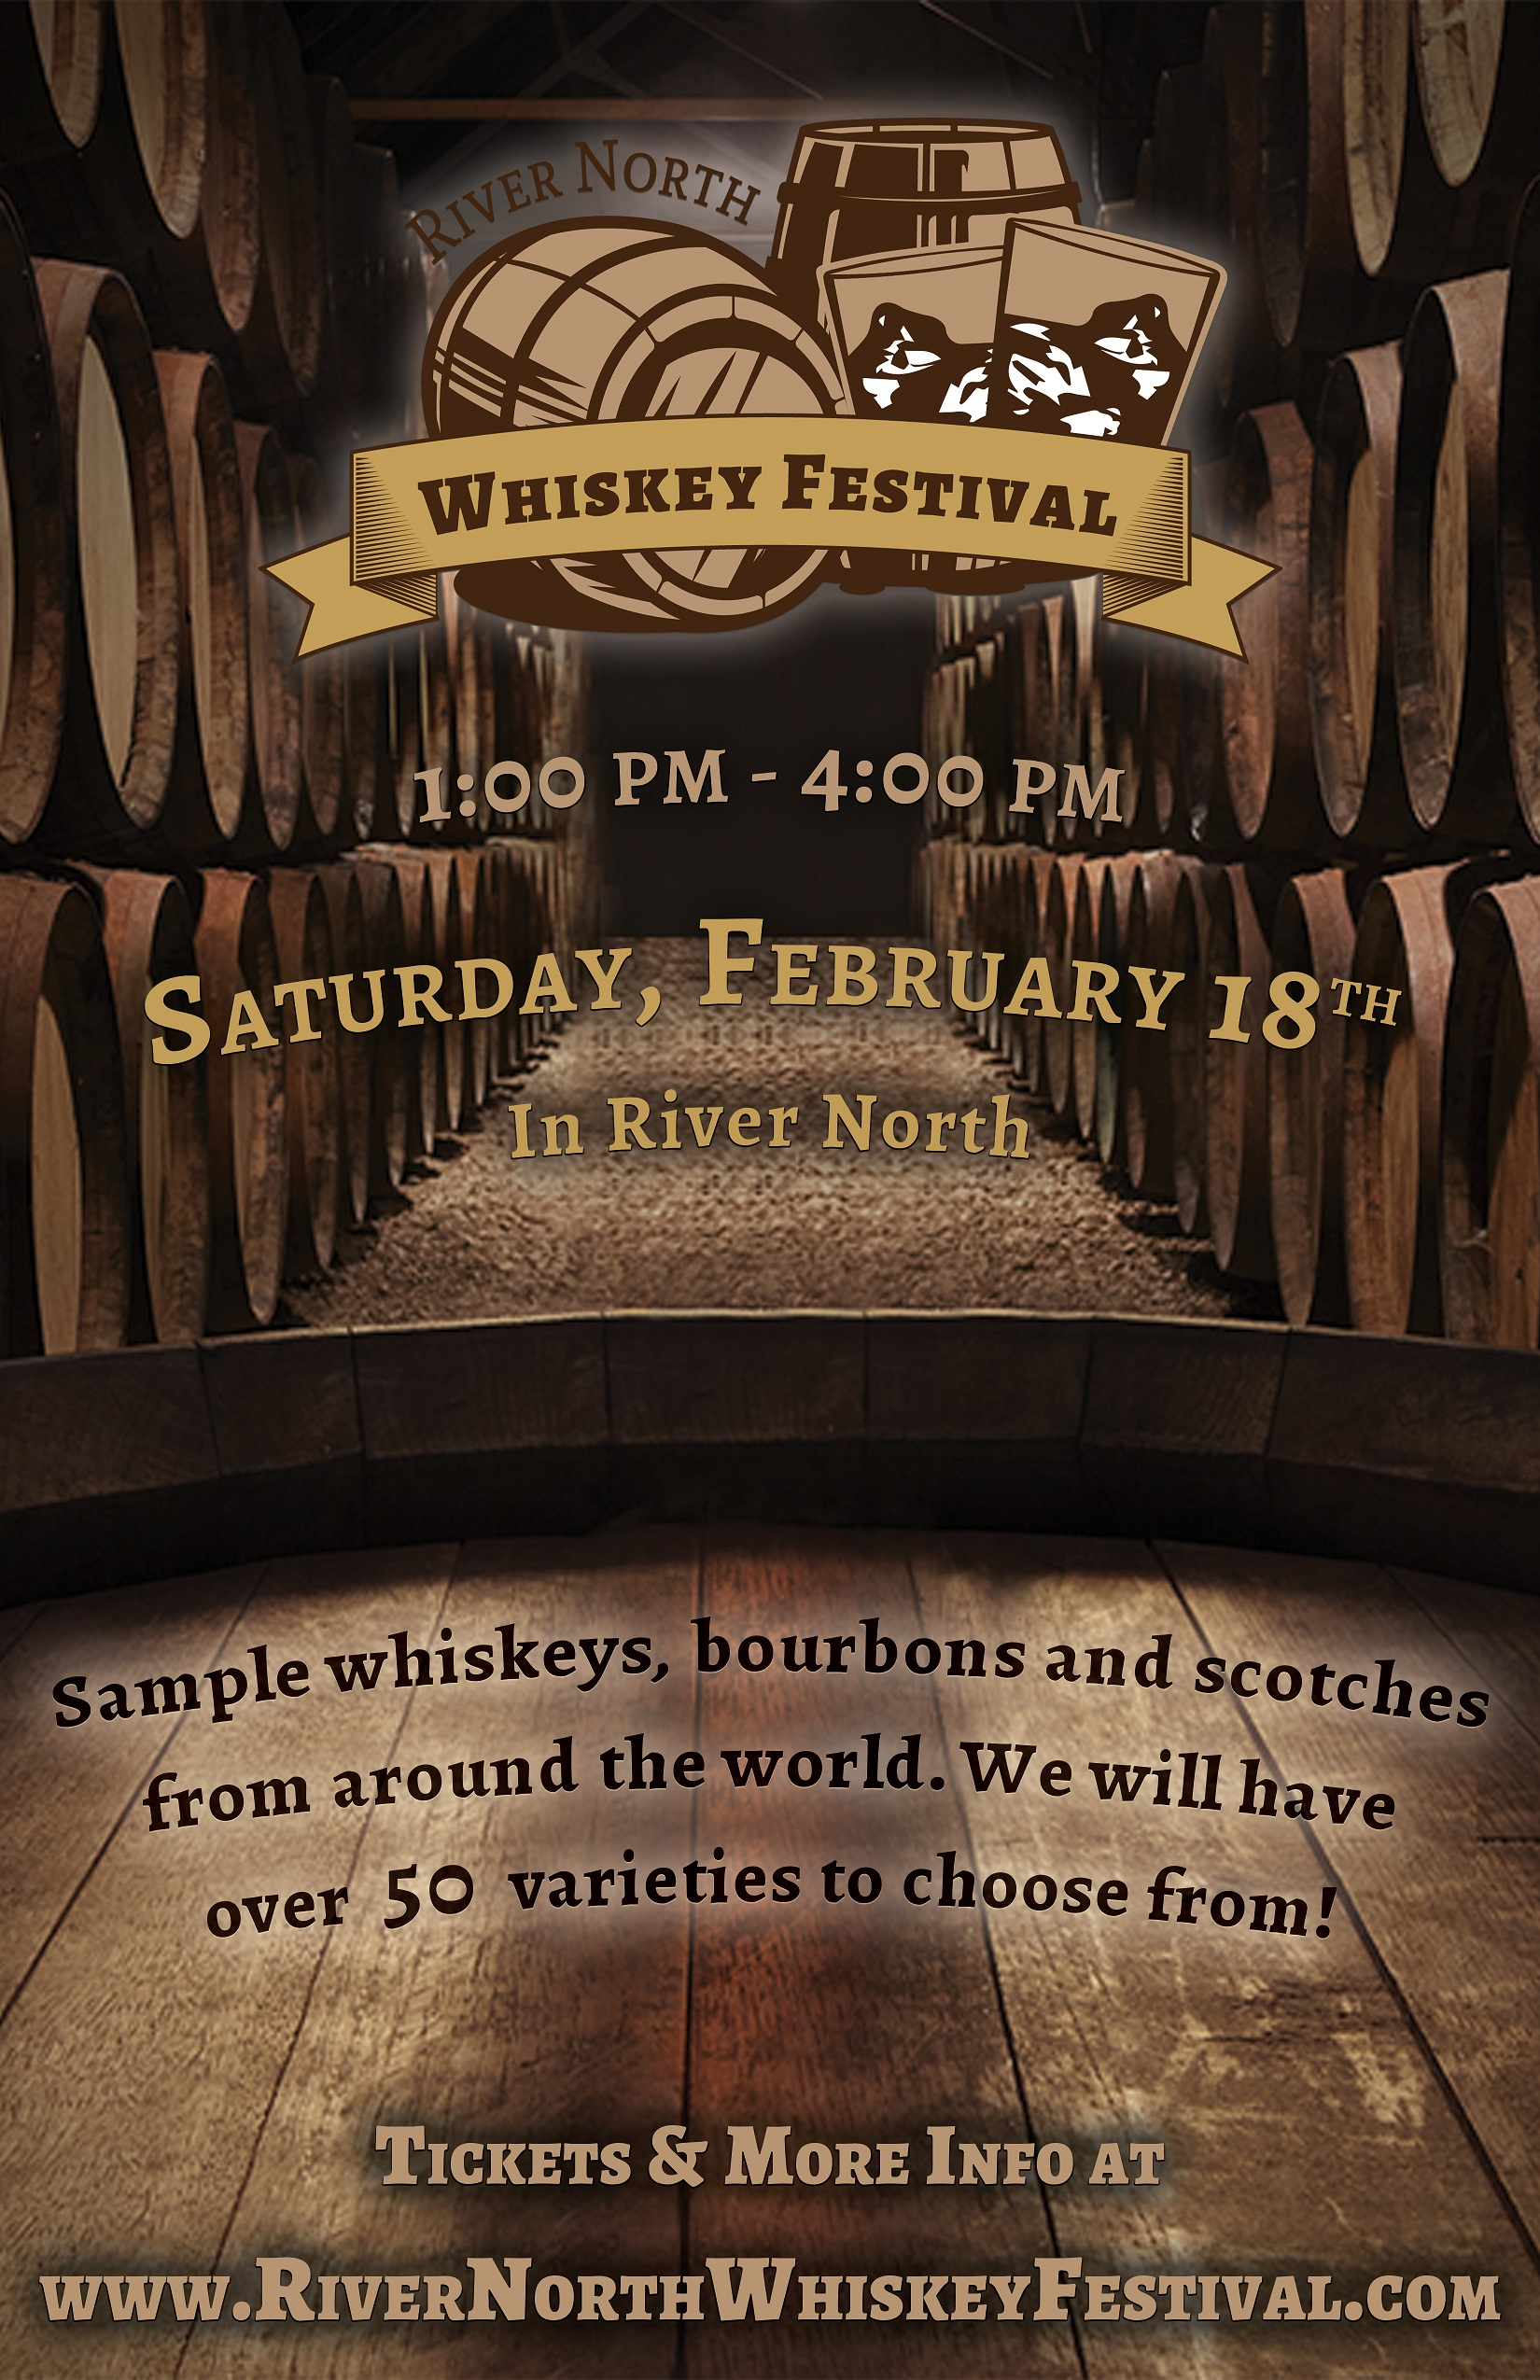 River North Chicago Whiskey Festival - Taste a variety of whiskeys, bourbons & scotches! We will have over 50 varieties to choose from!